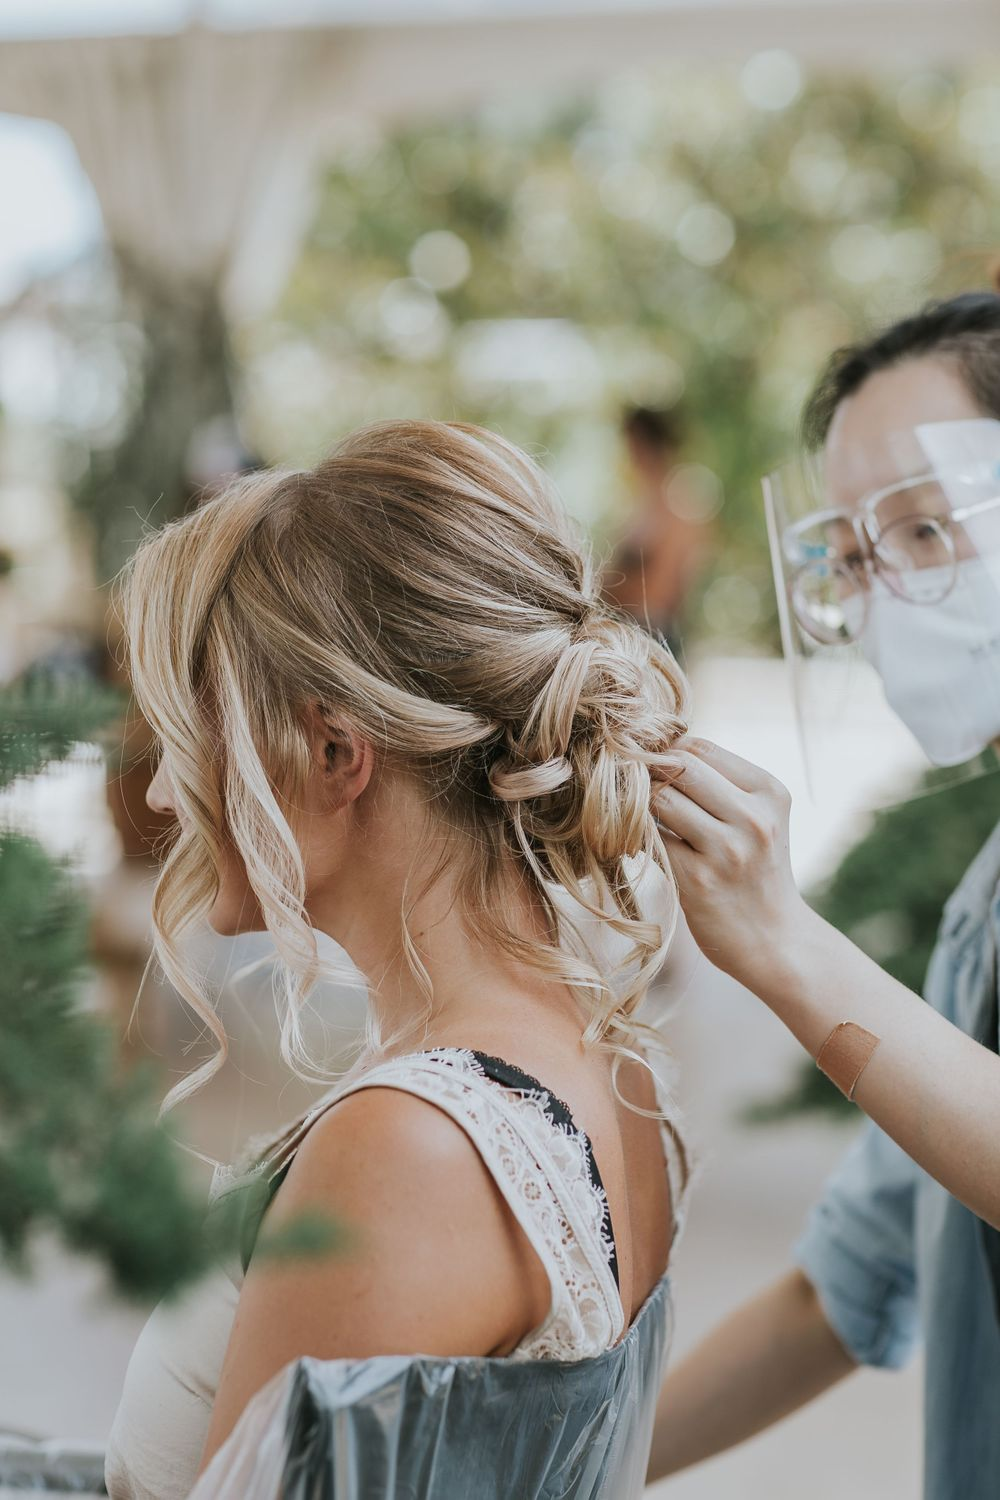 rebecca skidgel photography styled wedding shoot scribner bend sacramento mai makeup artistry hair getting ready bride